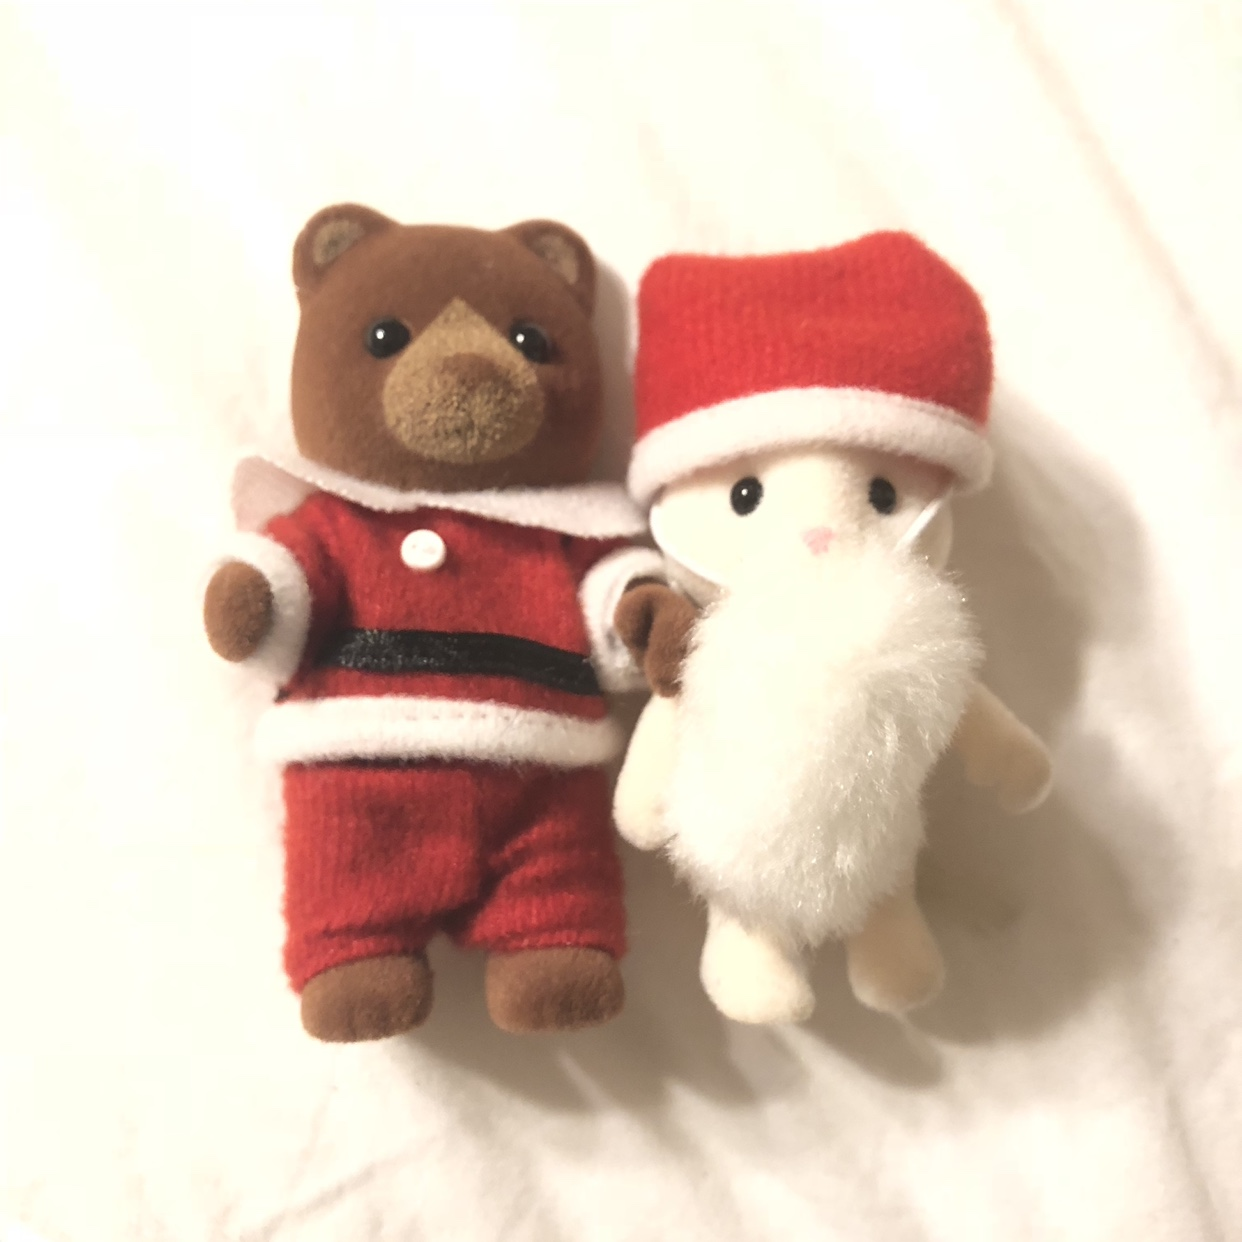 Rare Christmas Calico Critters  Sold together     - Depop